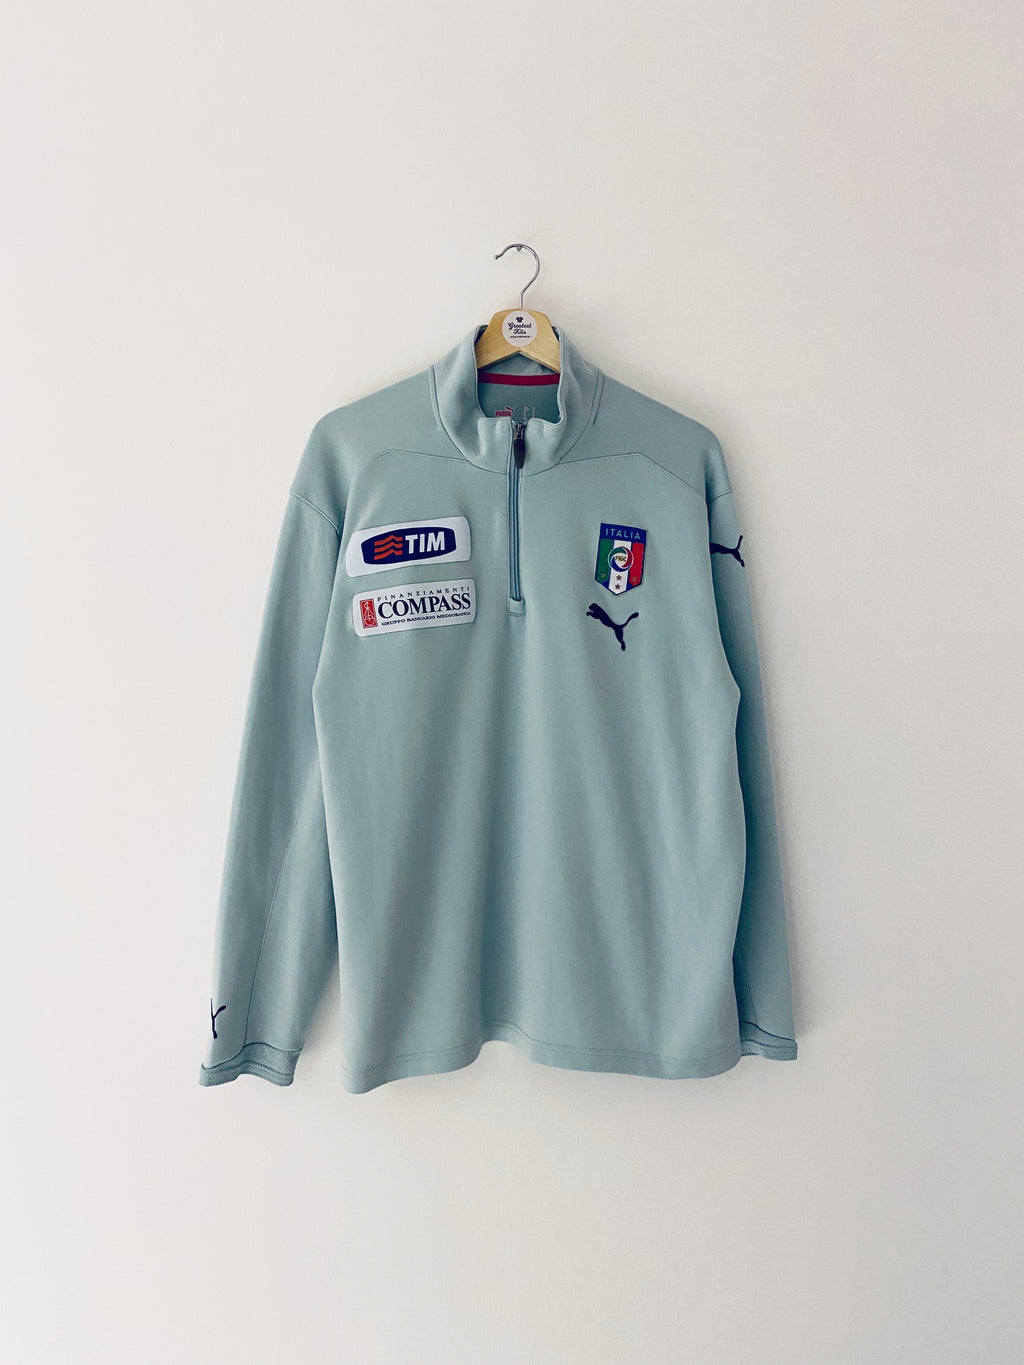 2007/08 Italy *Player Issue* 1/2 Zip Training Top (L) 7/10